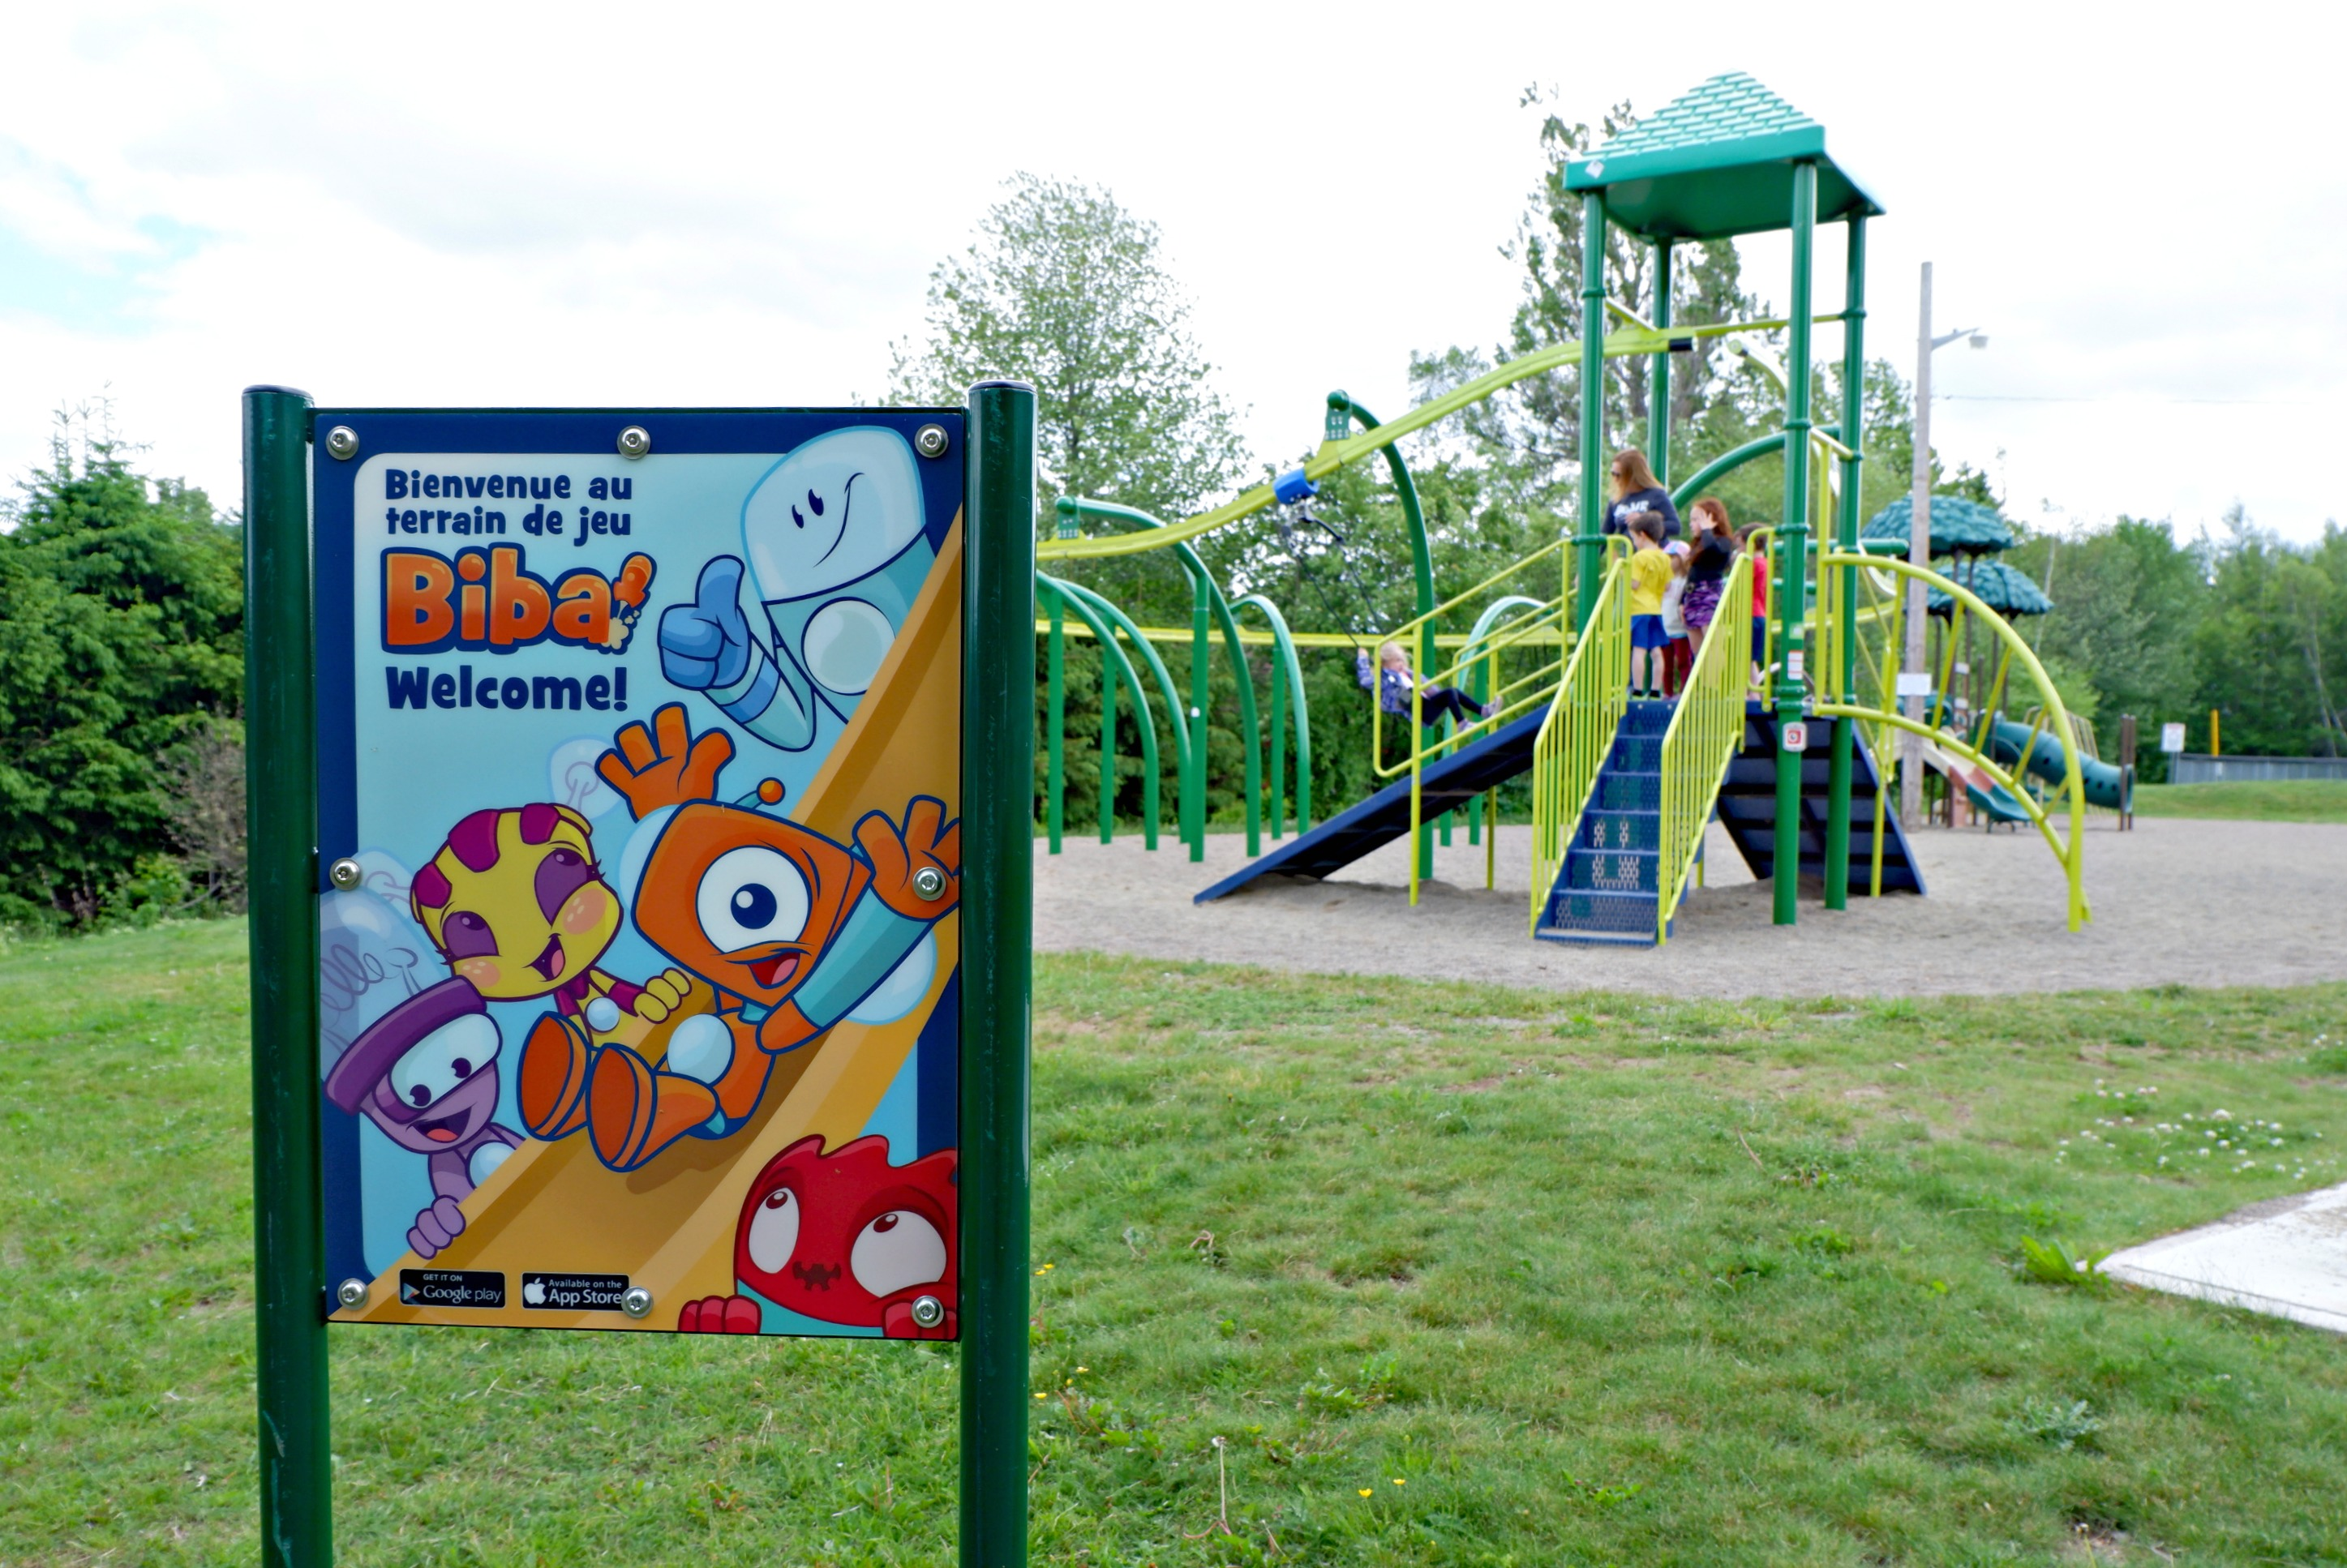 bridgedale playground riverview moncton dieppe best park play space pickle planet biba app